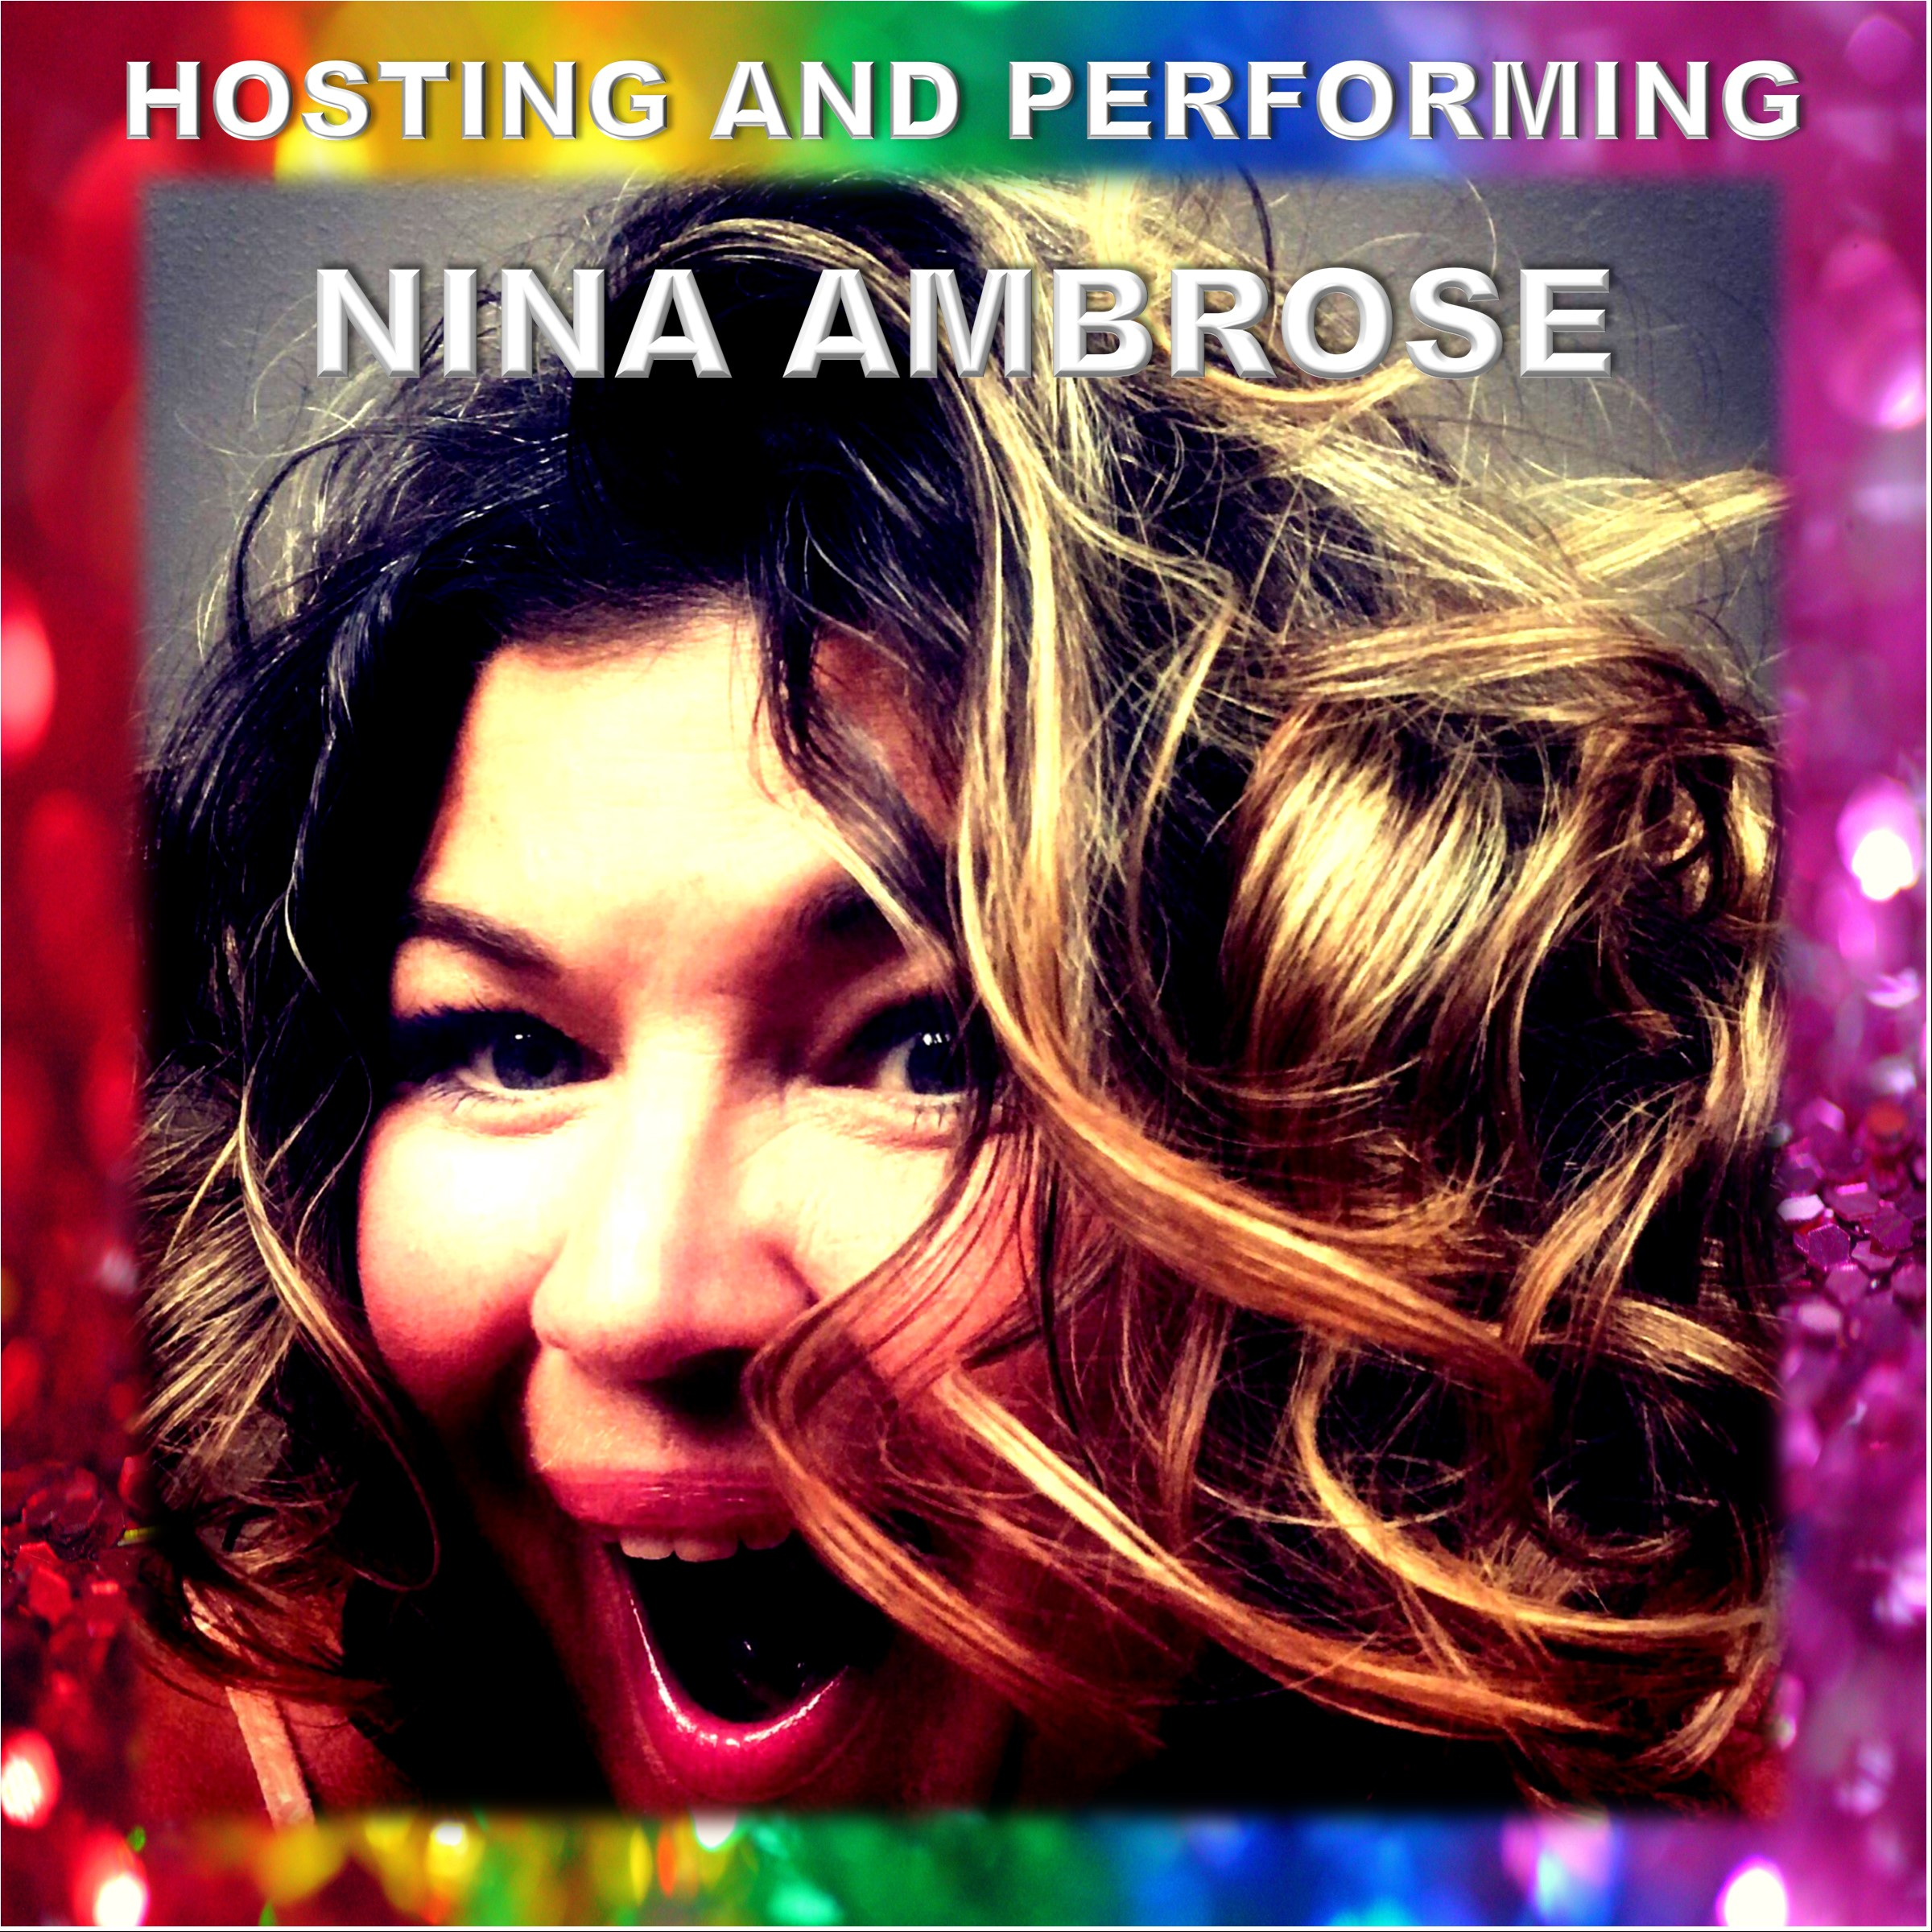 Hosting and Performing Nina Ambrose